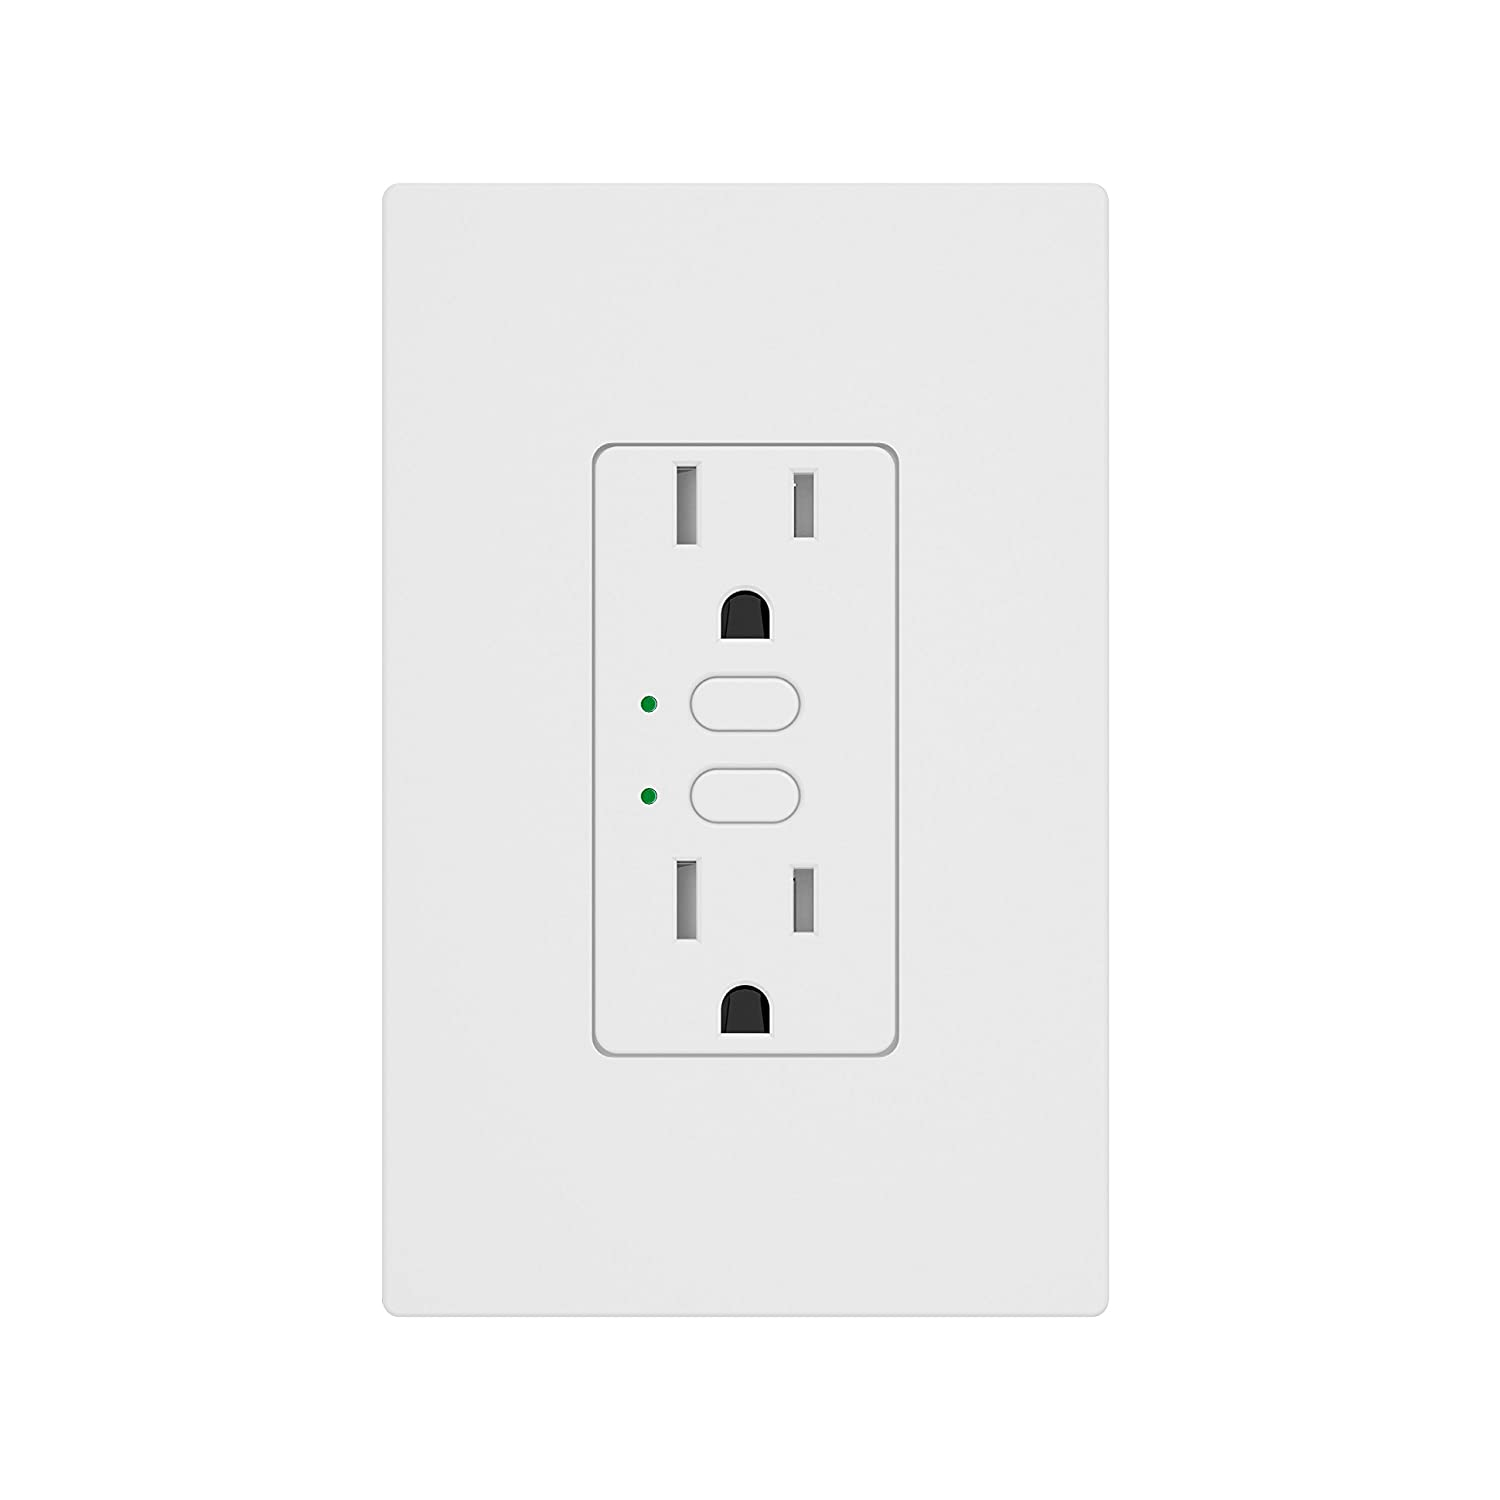 Insteon Smart Wall Outlet, Top & Bottom Outlets are Independently ...